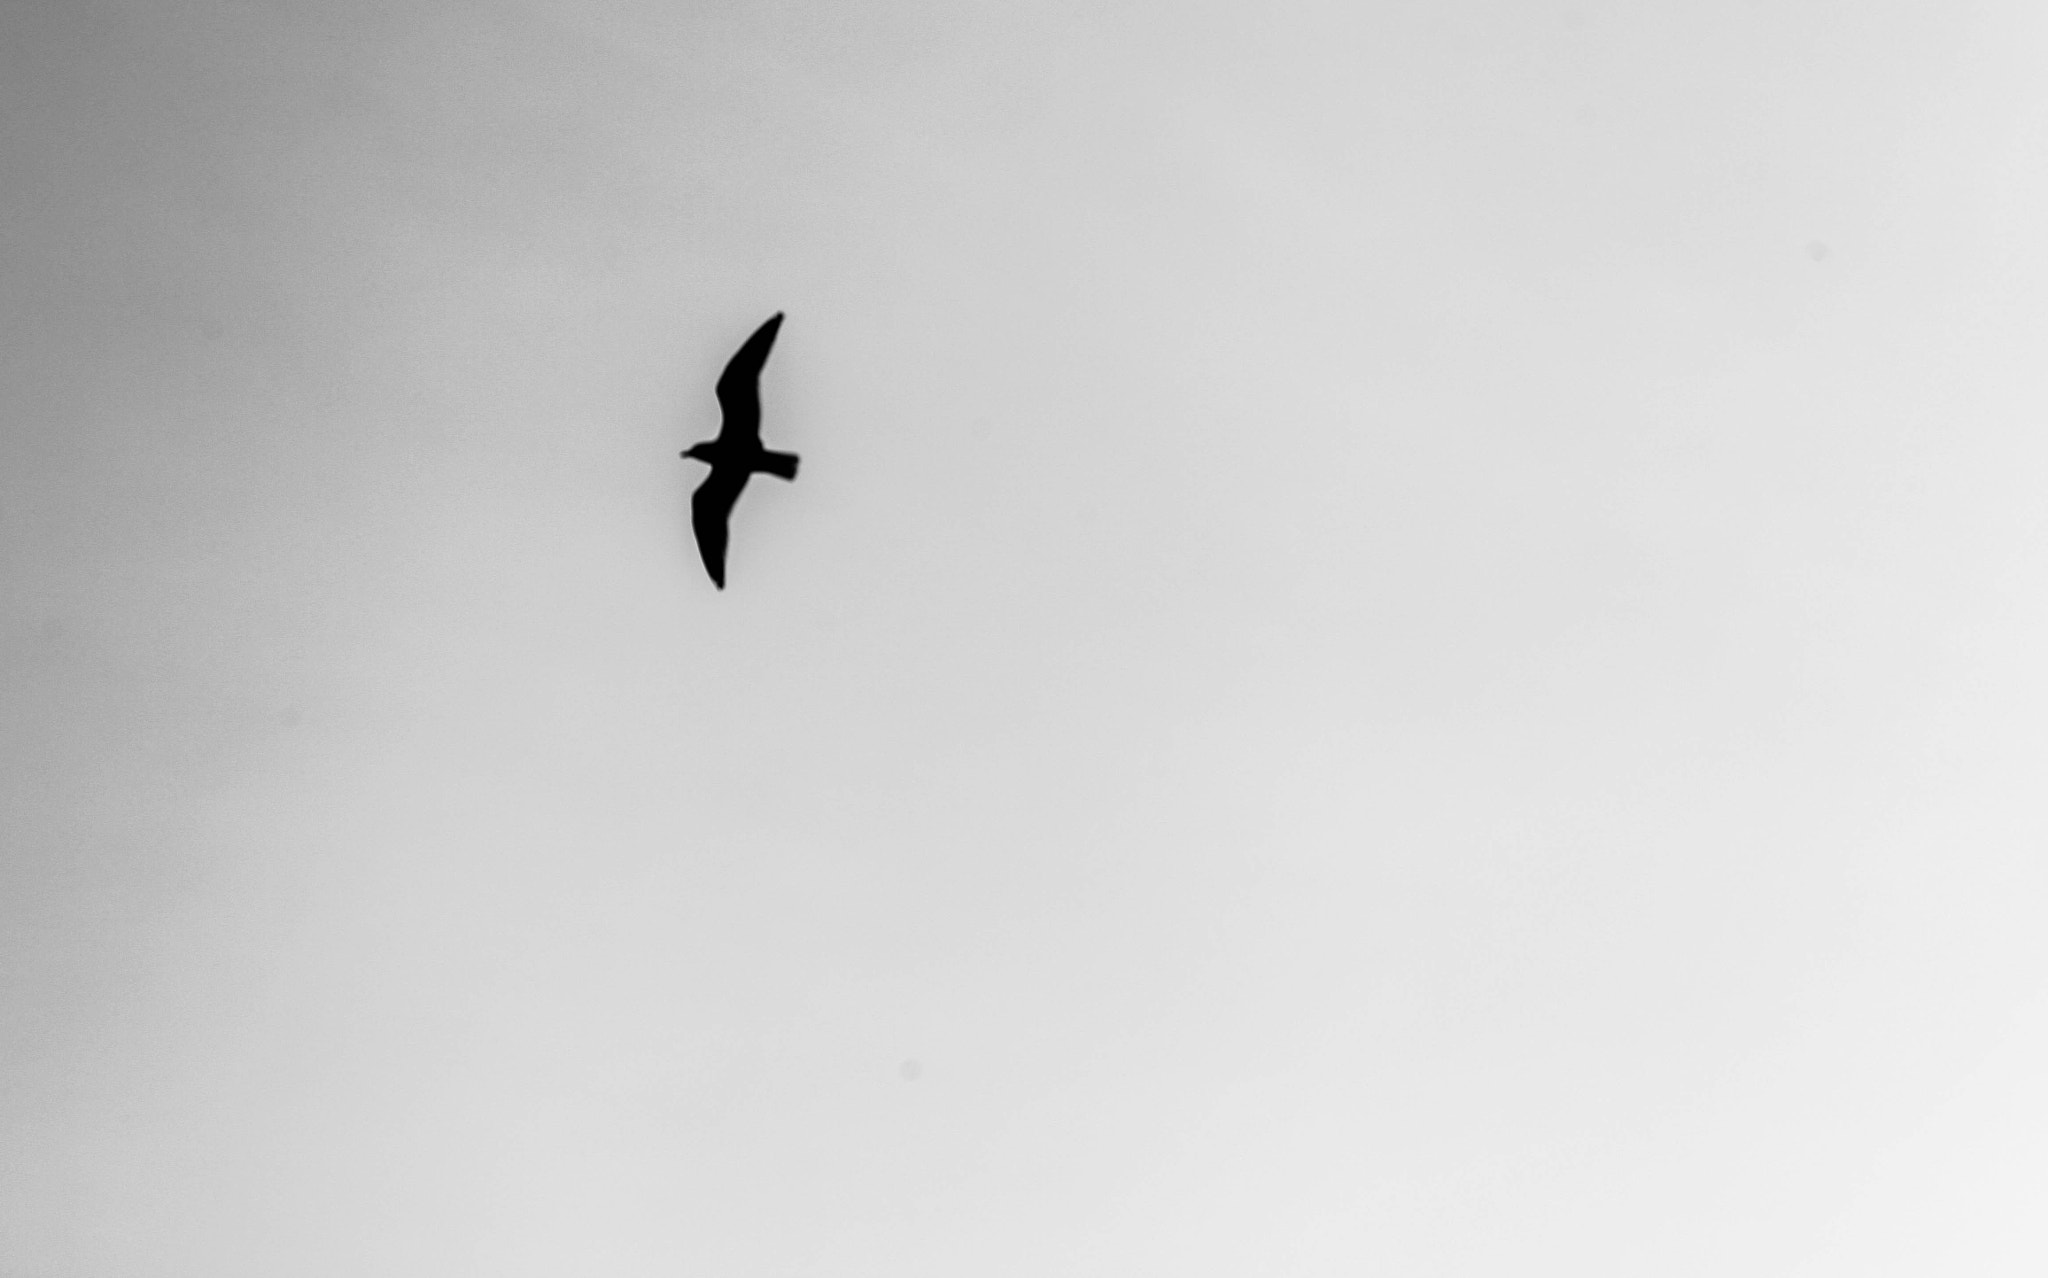 Photograph { Flying in My Own Sky }  by Anh Gerrard  on 500px